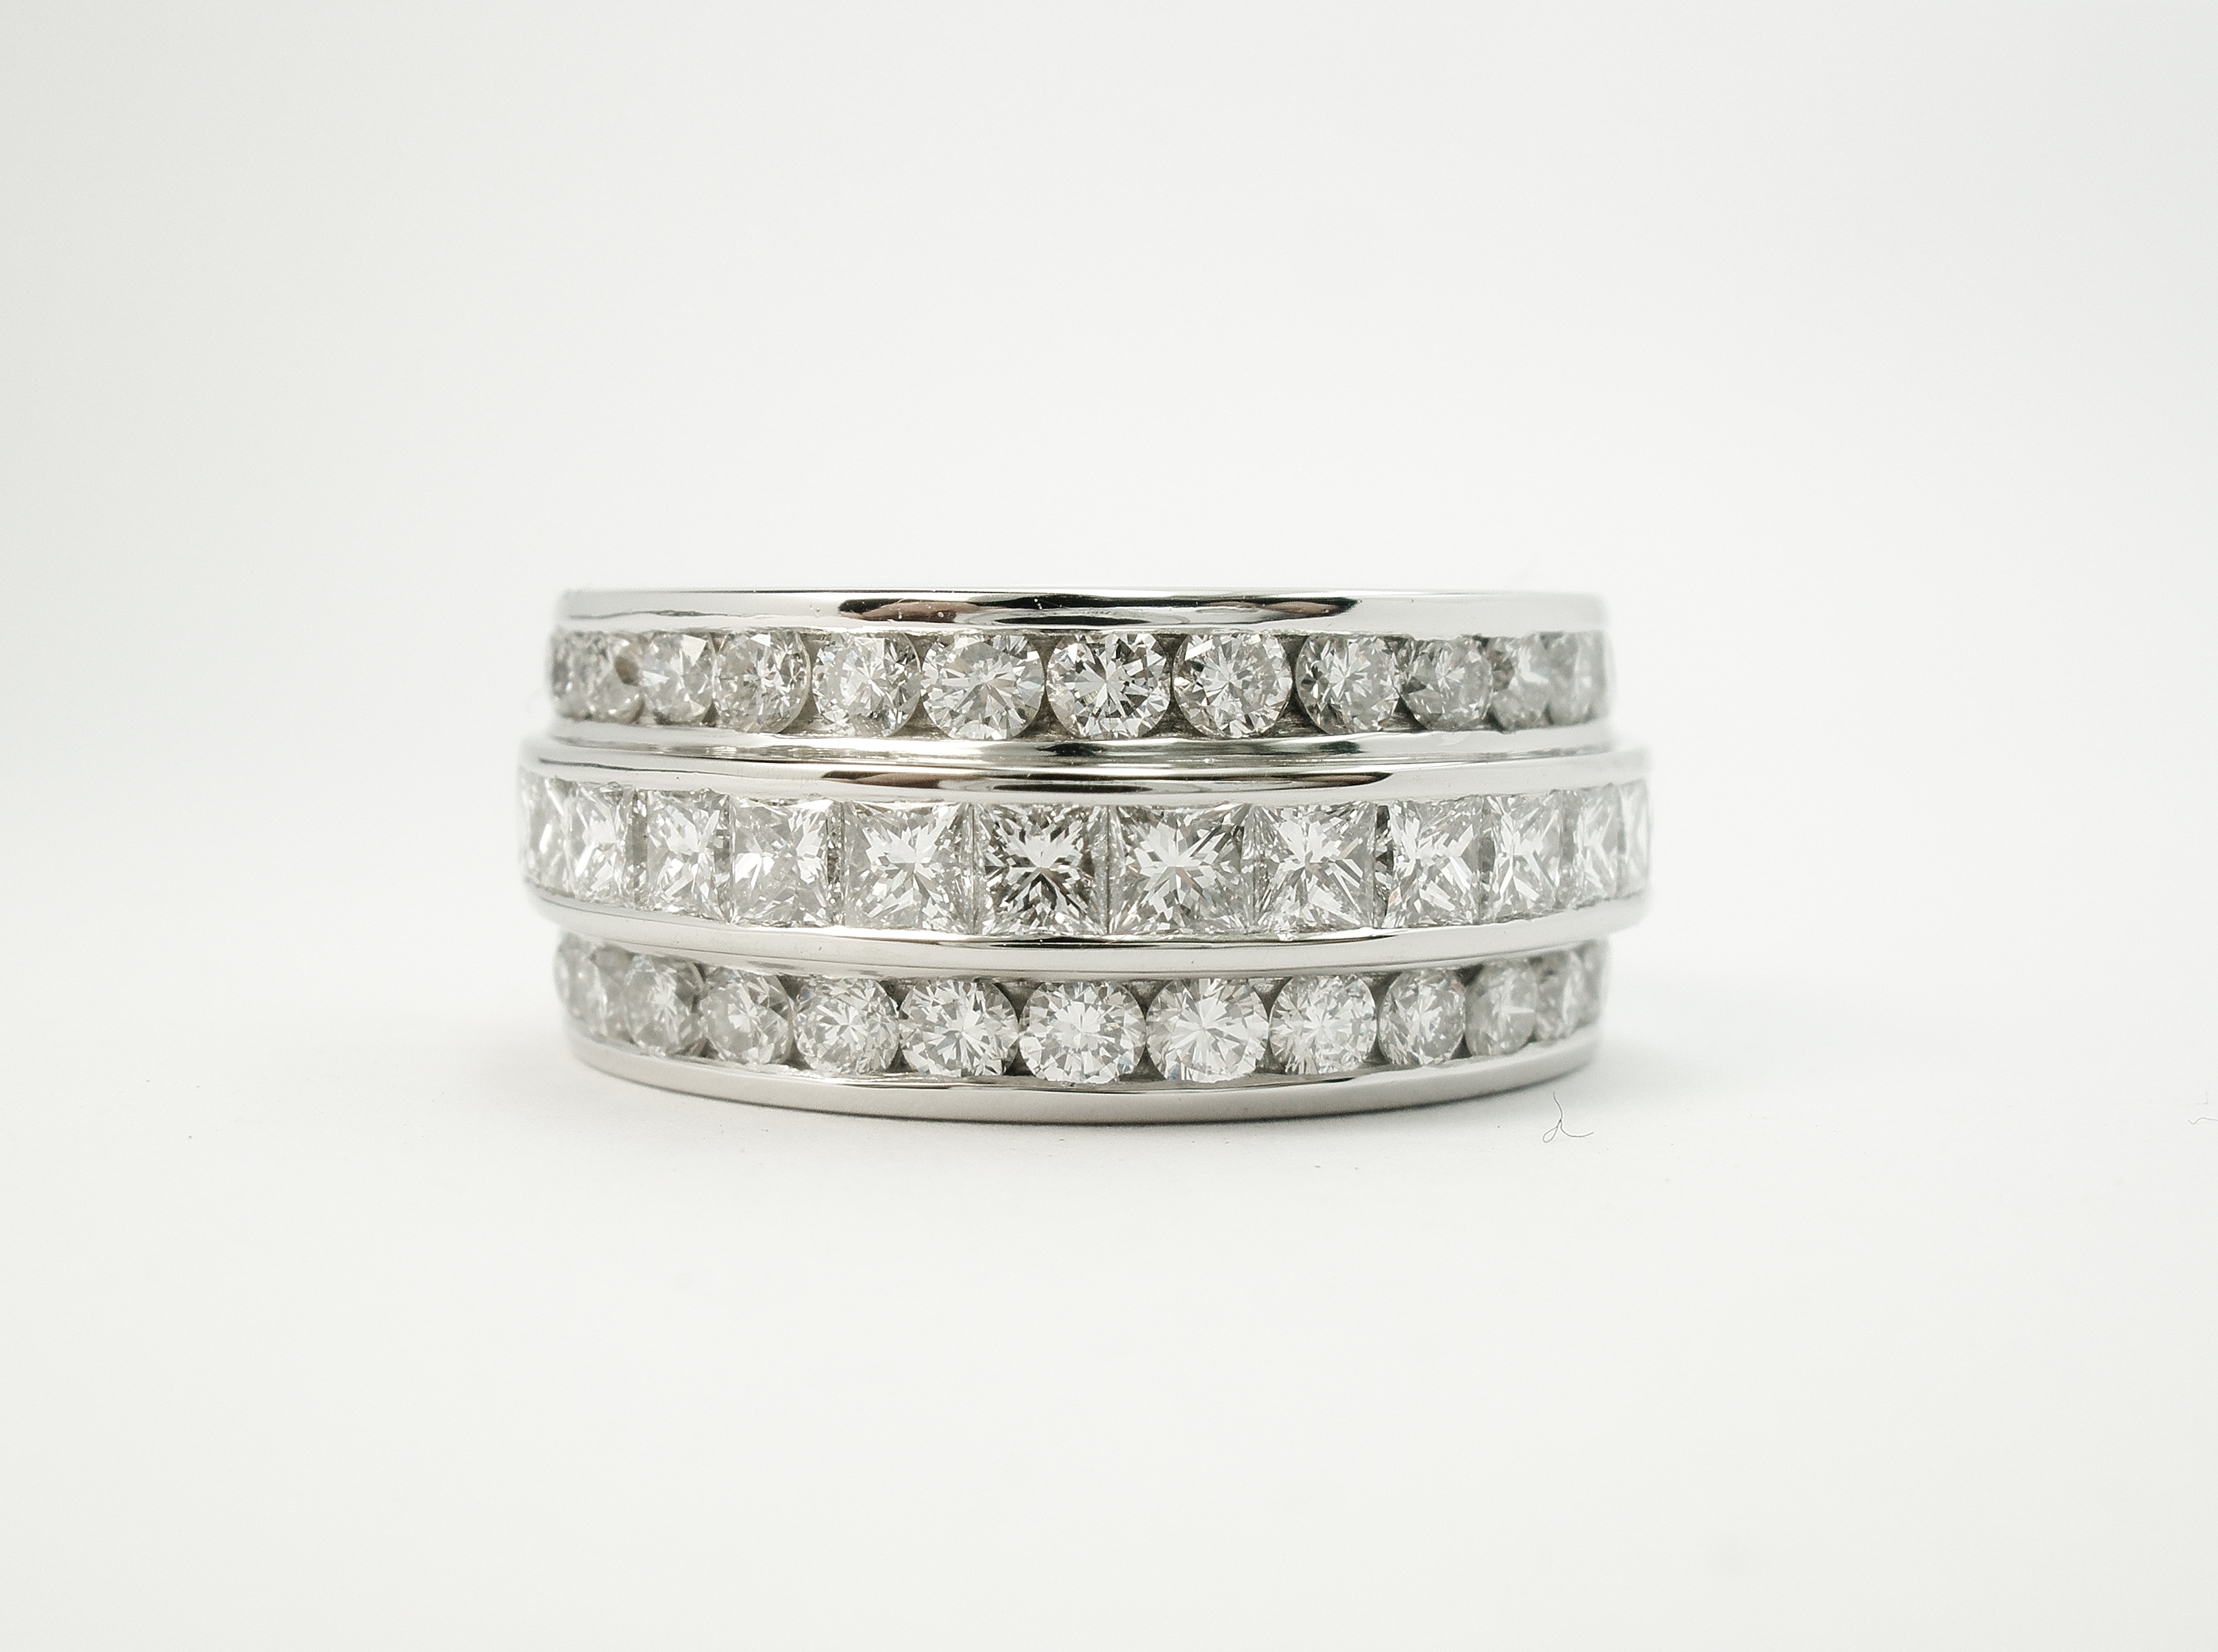 Princess cut diamond and round brilliant cut diamond triple platinum wedding ring set to 55% cover.